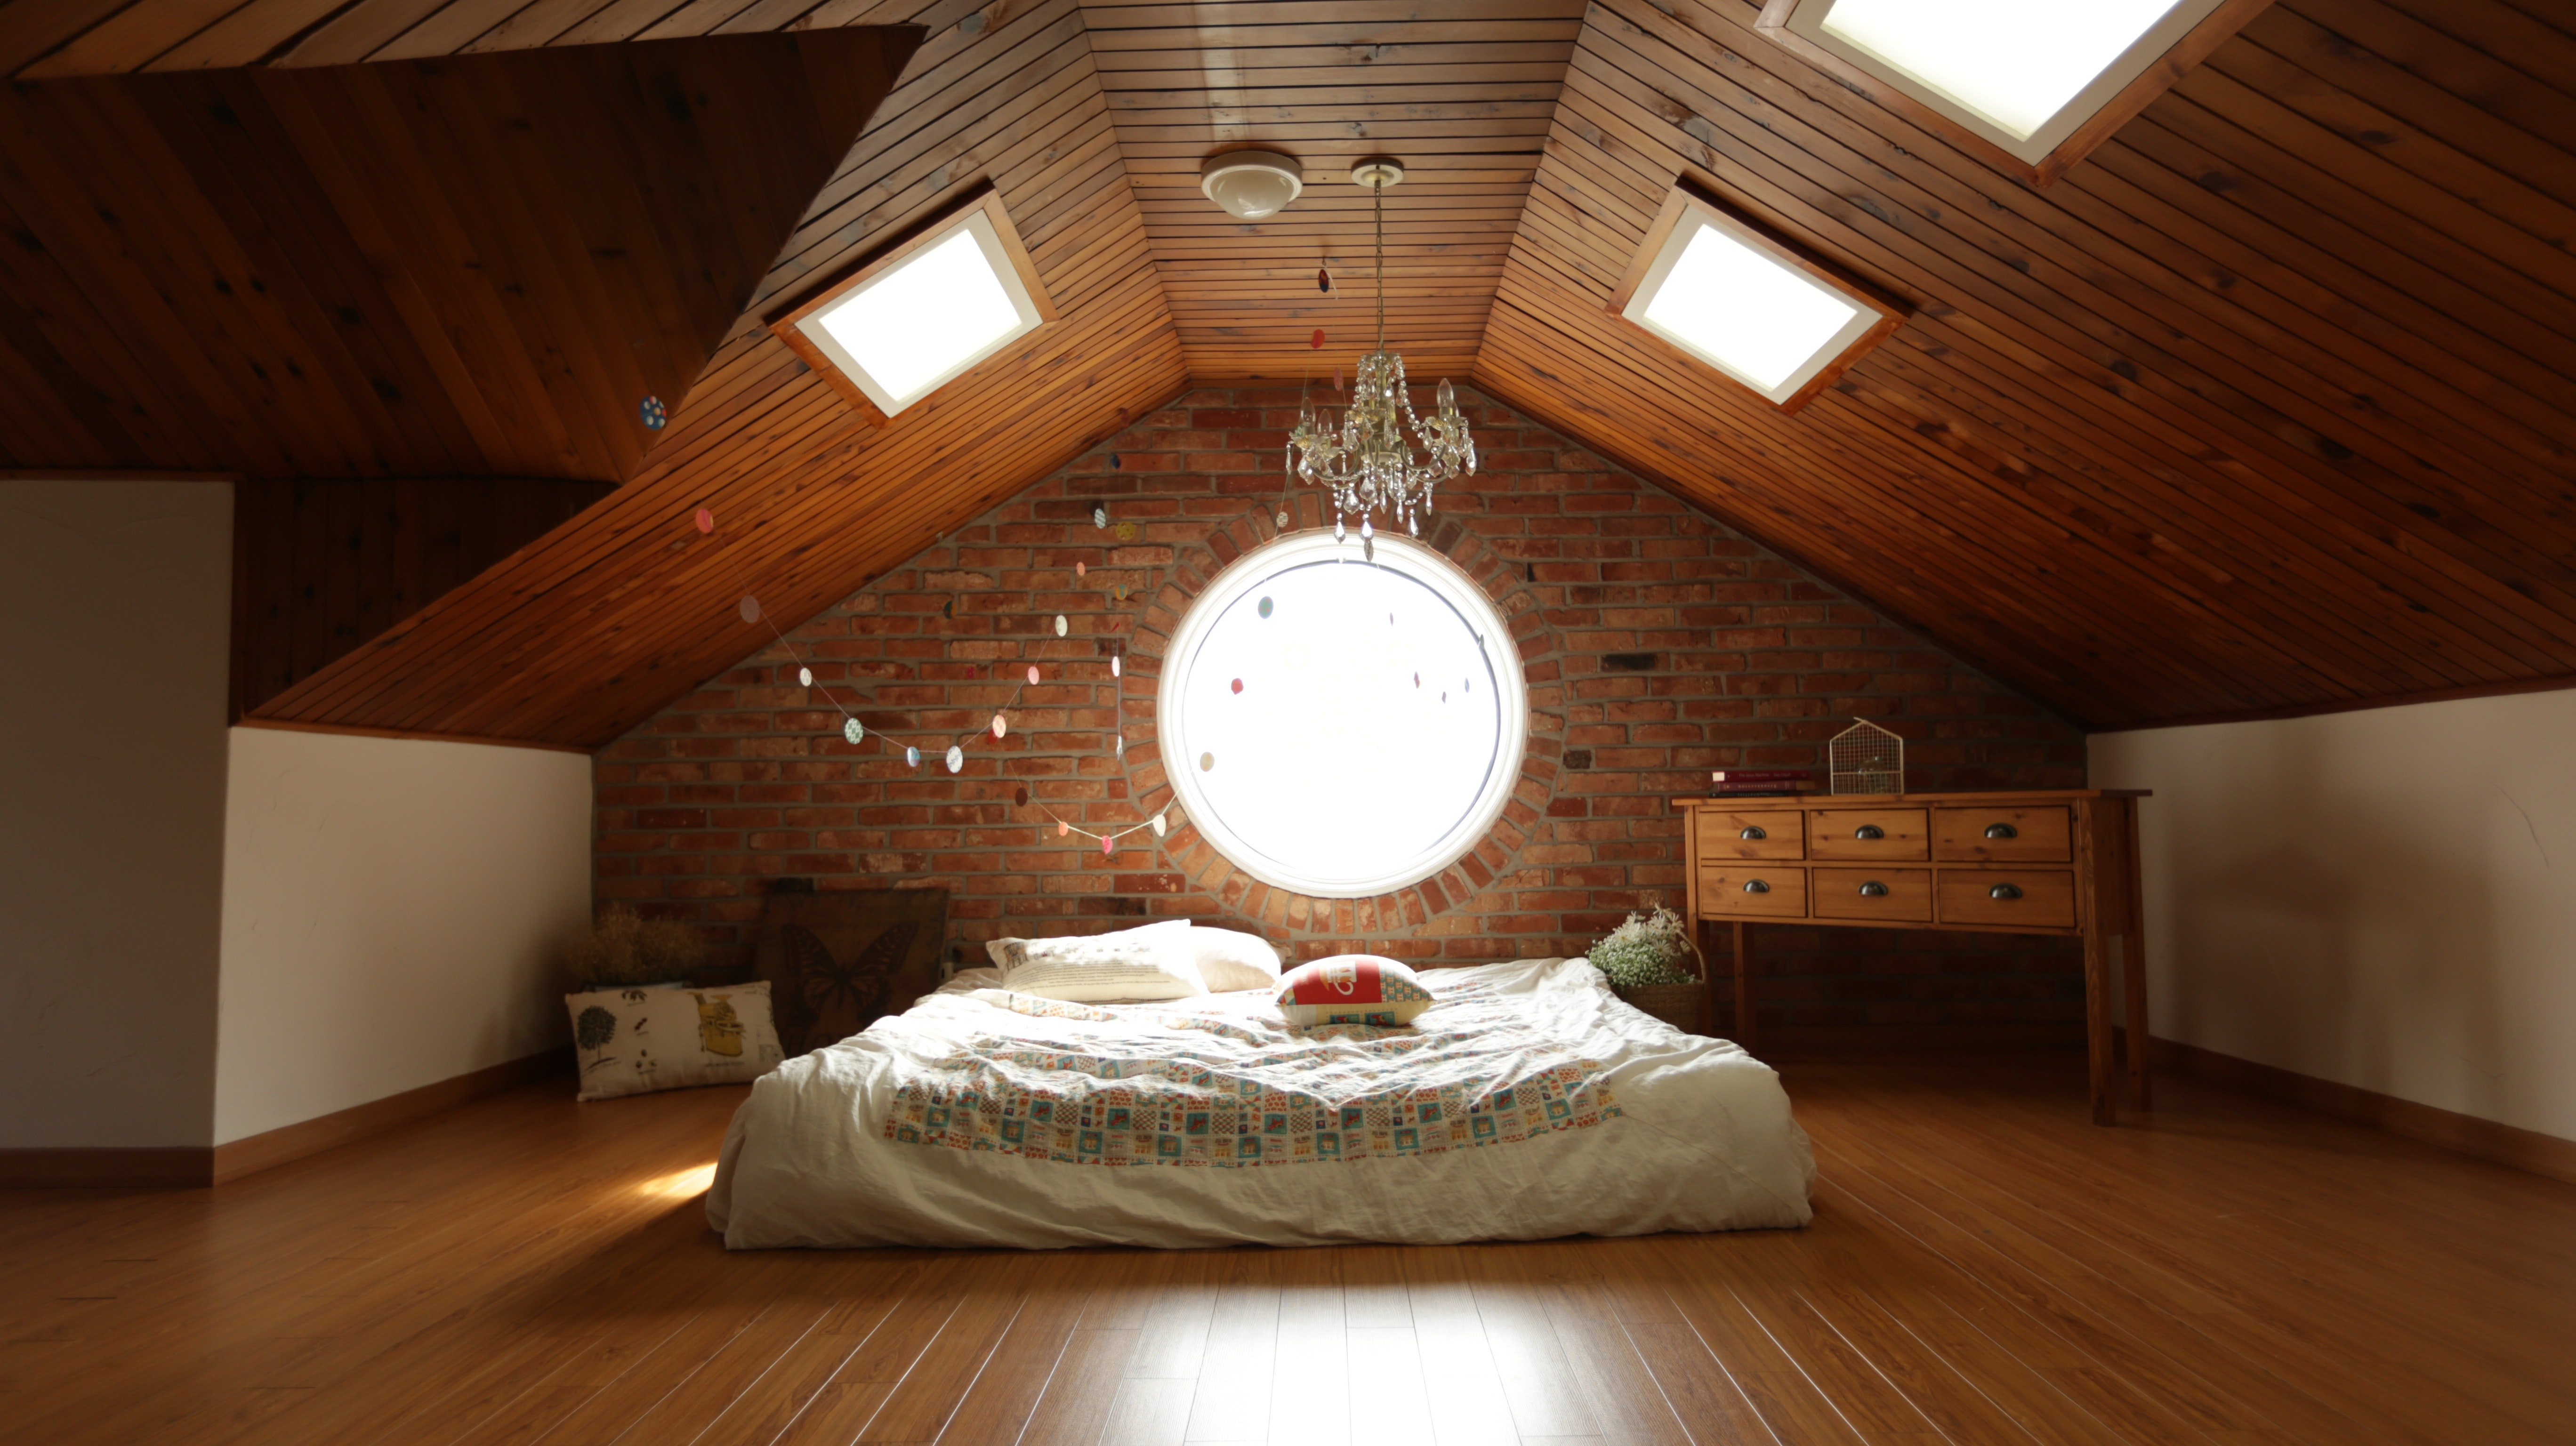 architecture-bed-bedroom-271743